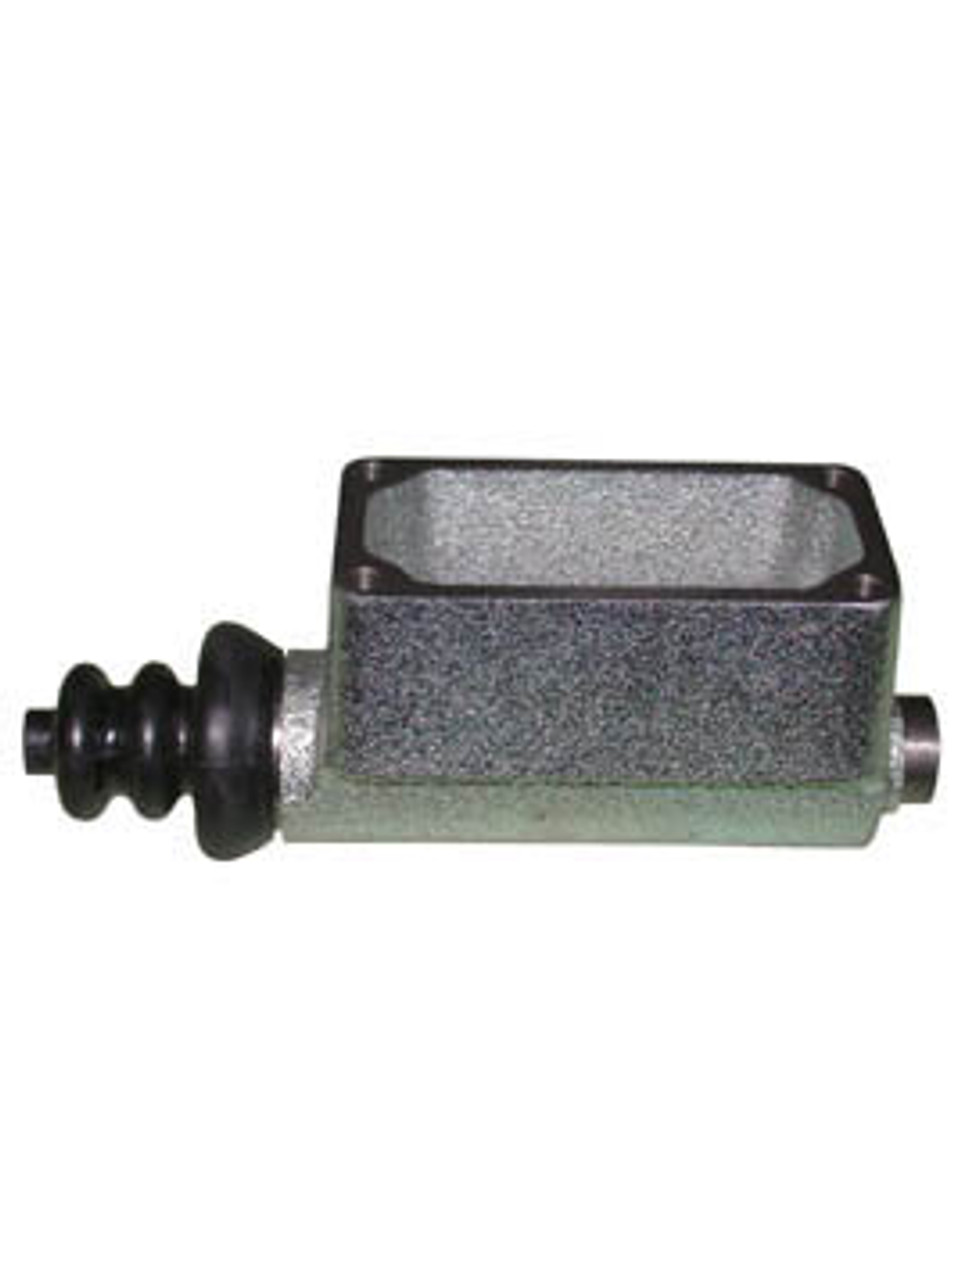 23361 --- Model 60 Actuator Master Cylinder for Drum Brakes